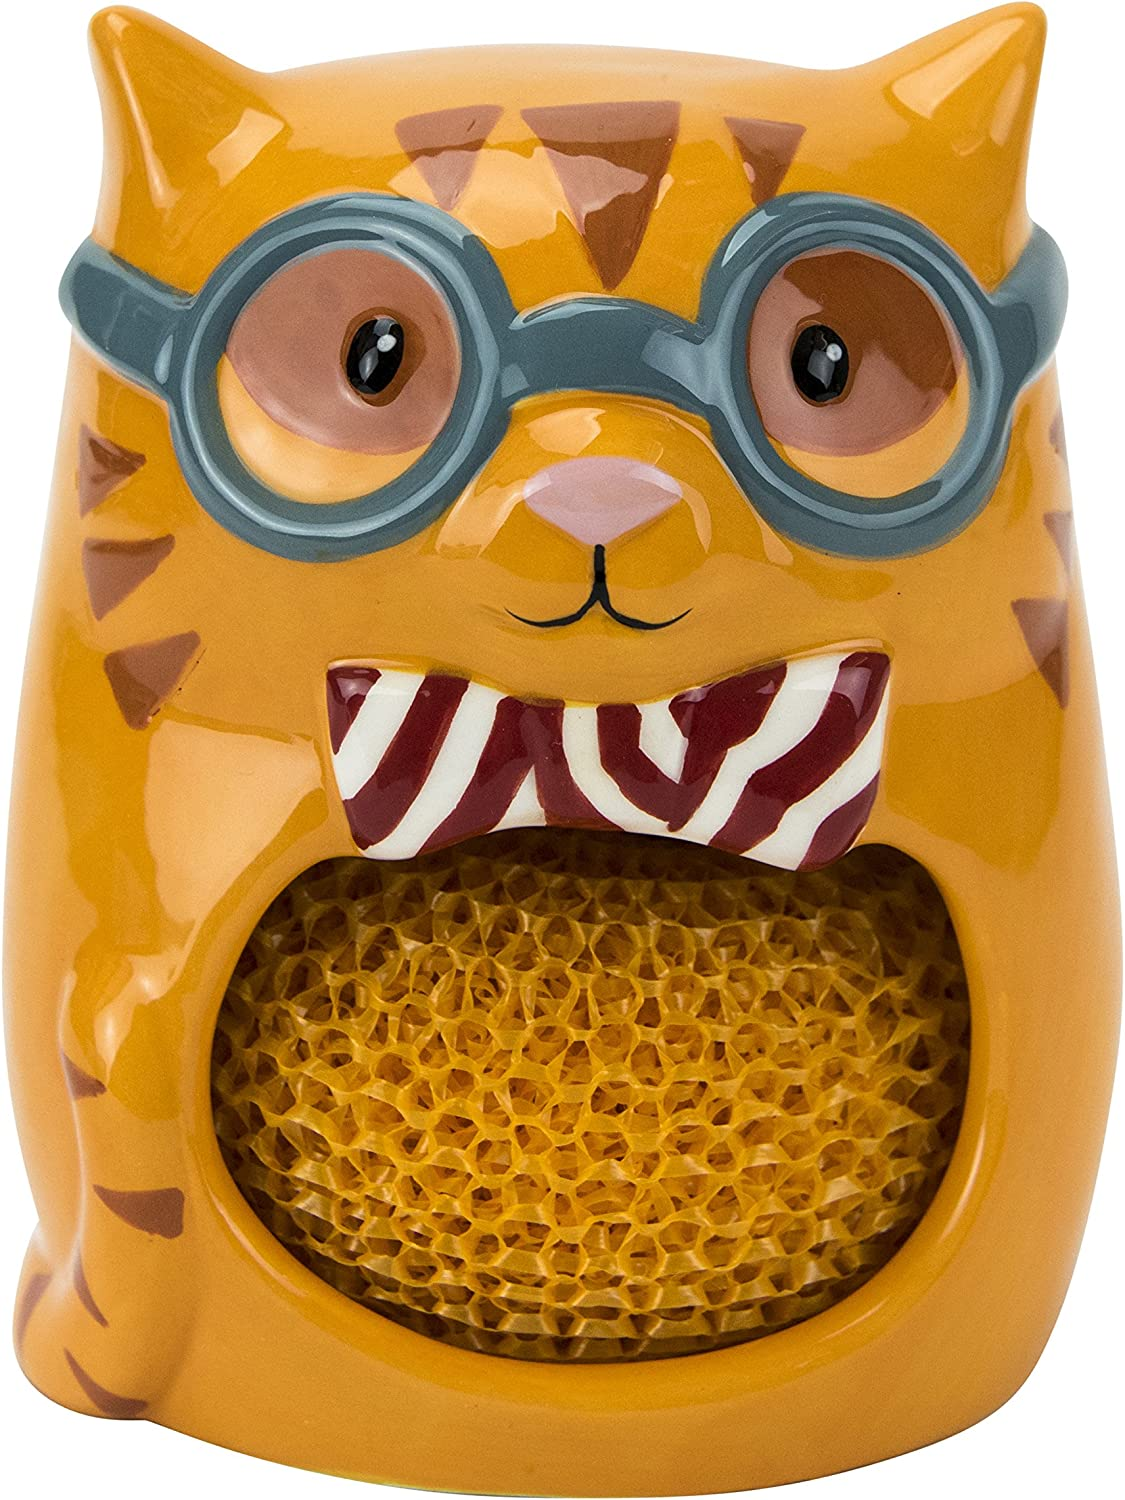 Scrubby /& Sponge Holder Pugly Sweater Collection Hand-Painted Earthenware by Boston Warehouse